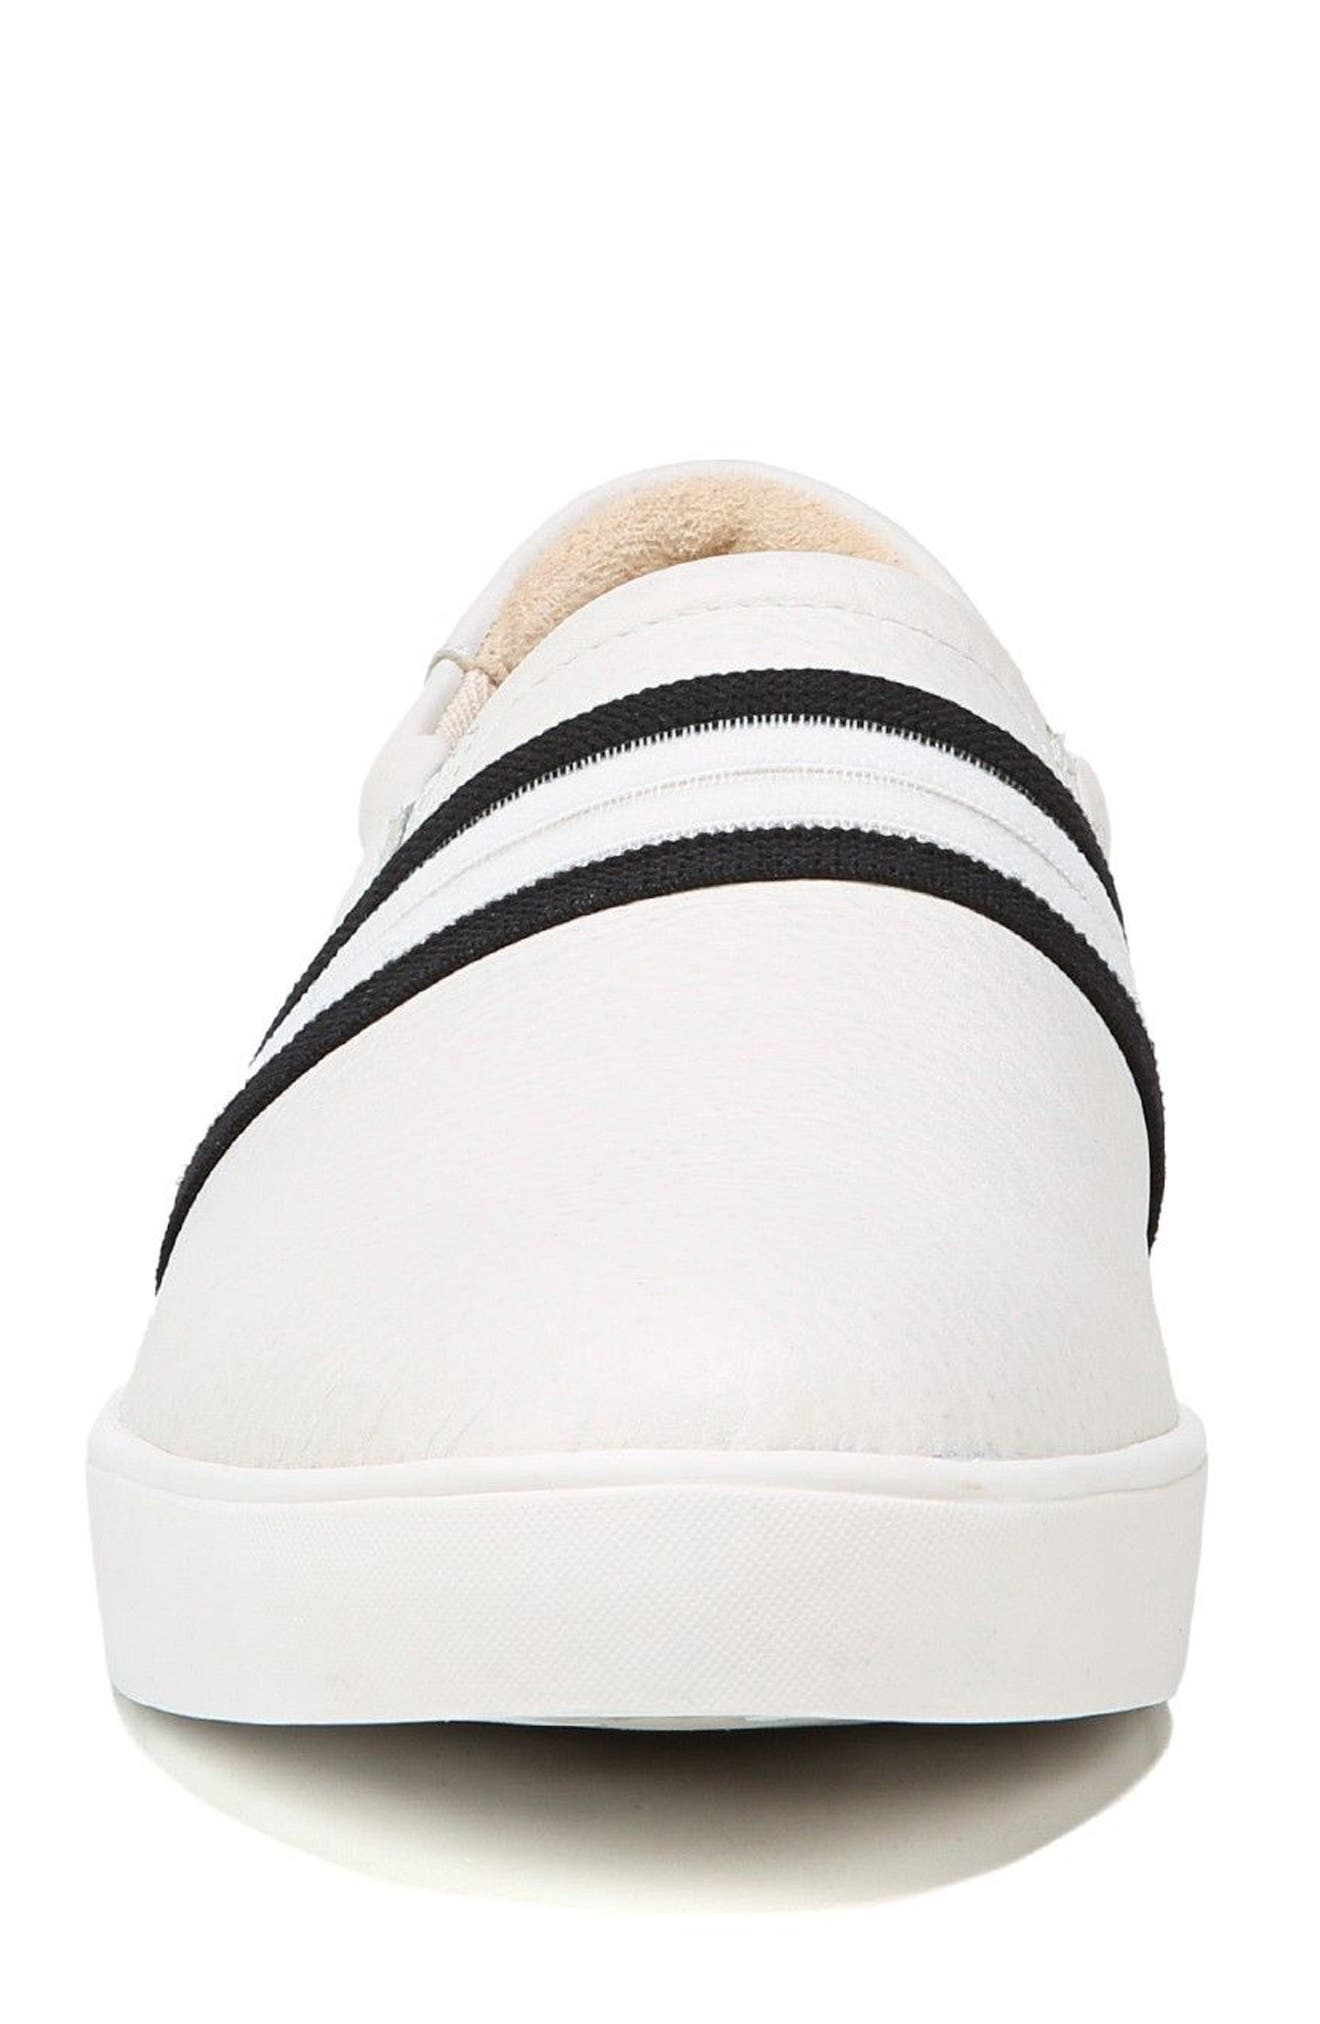 Scout Slip-On Sneaker,                             Alternate thumbnail 4, color,                             White Leather